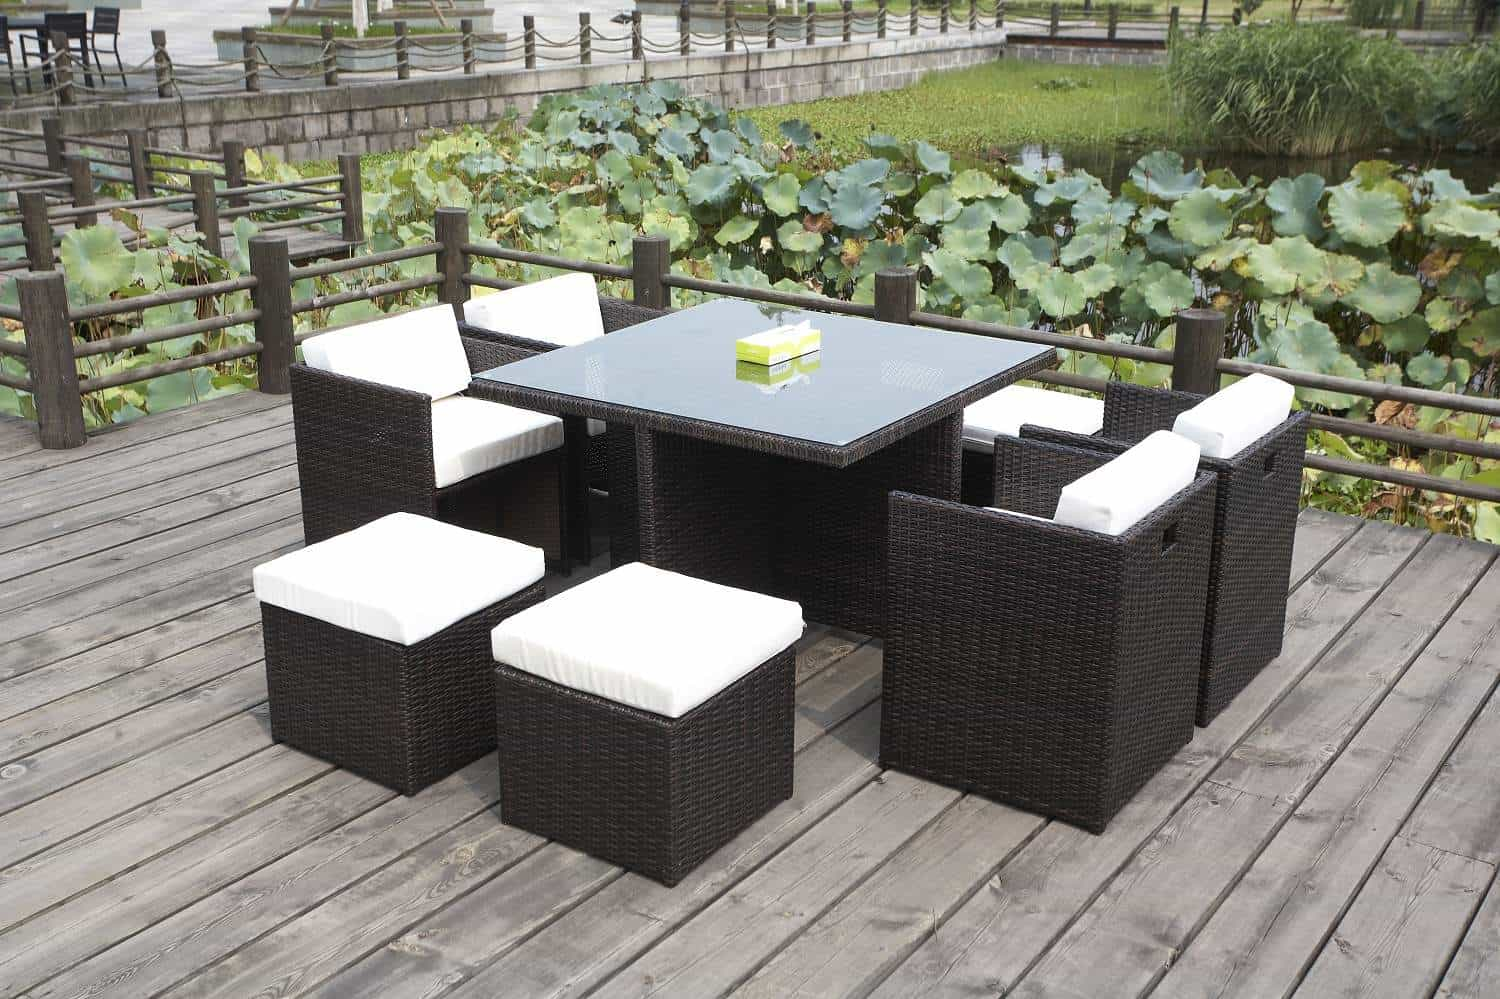 Furniture for sale ie rattan furniture fore sale ireland for Outdoor furniture ireland